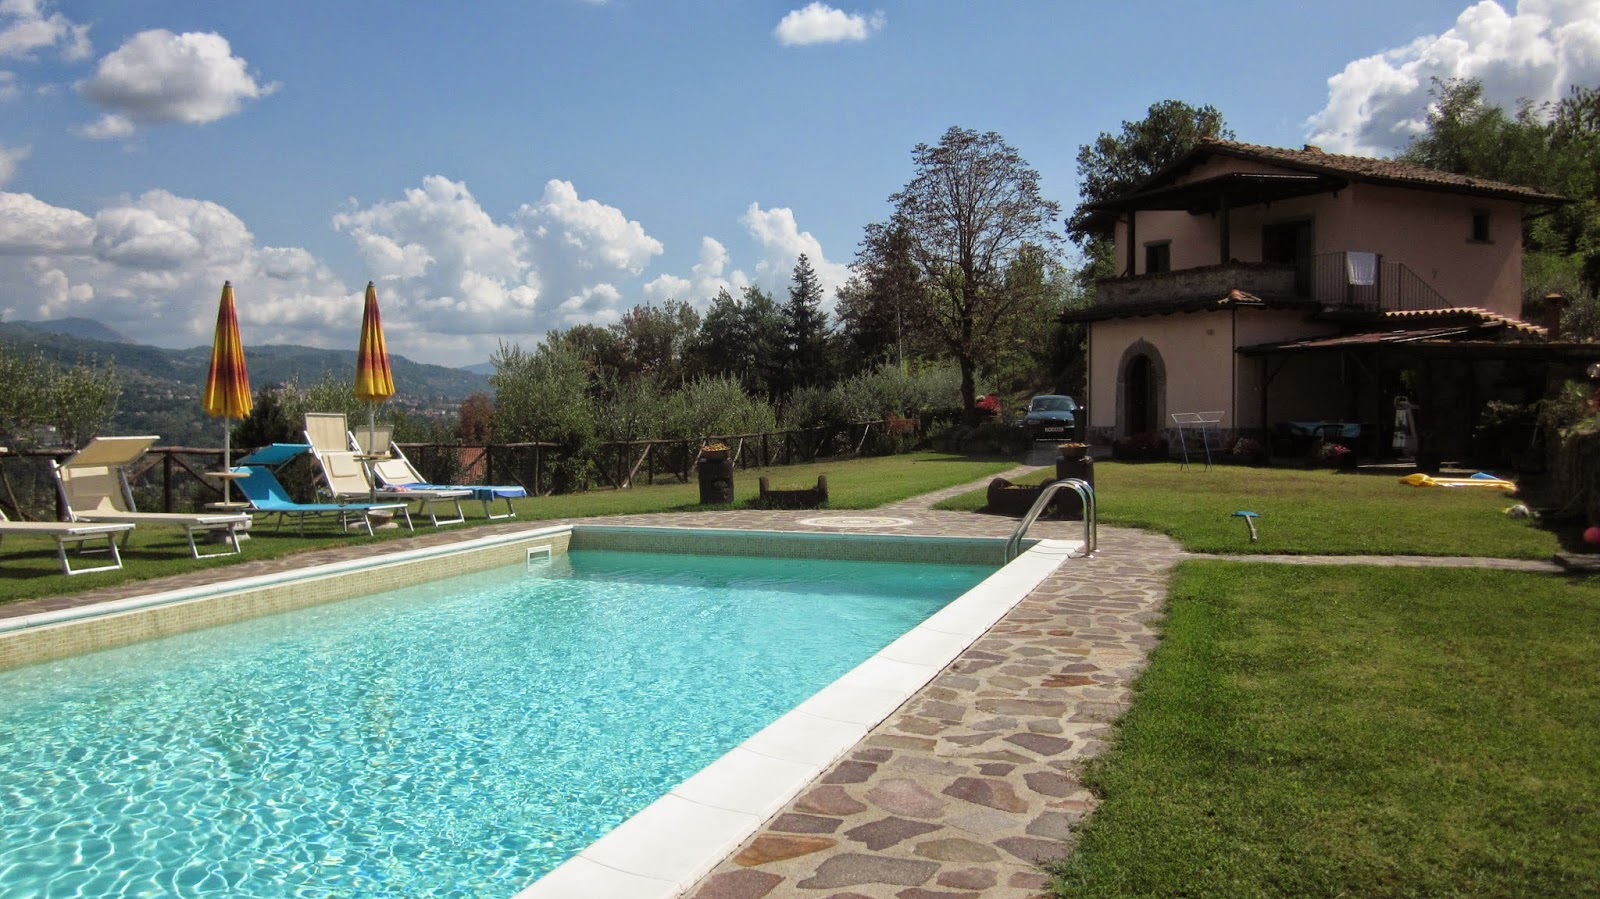 Villa La Borracia in Tuscany, Italy